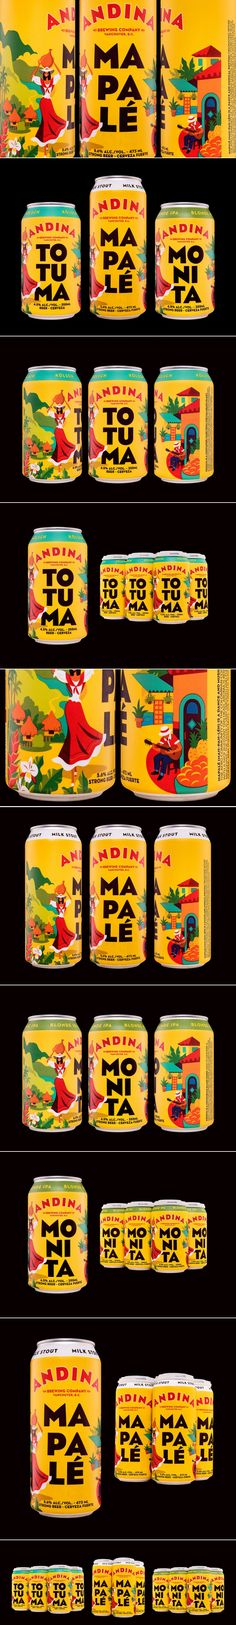 These Brews Capture The Spirit and Liveliness of Colombia — The Dieline | Packaging & Branding Design & Innovation News